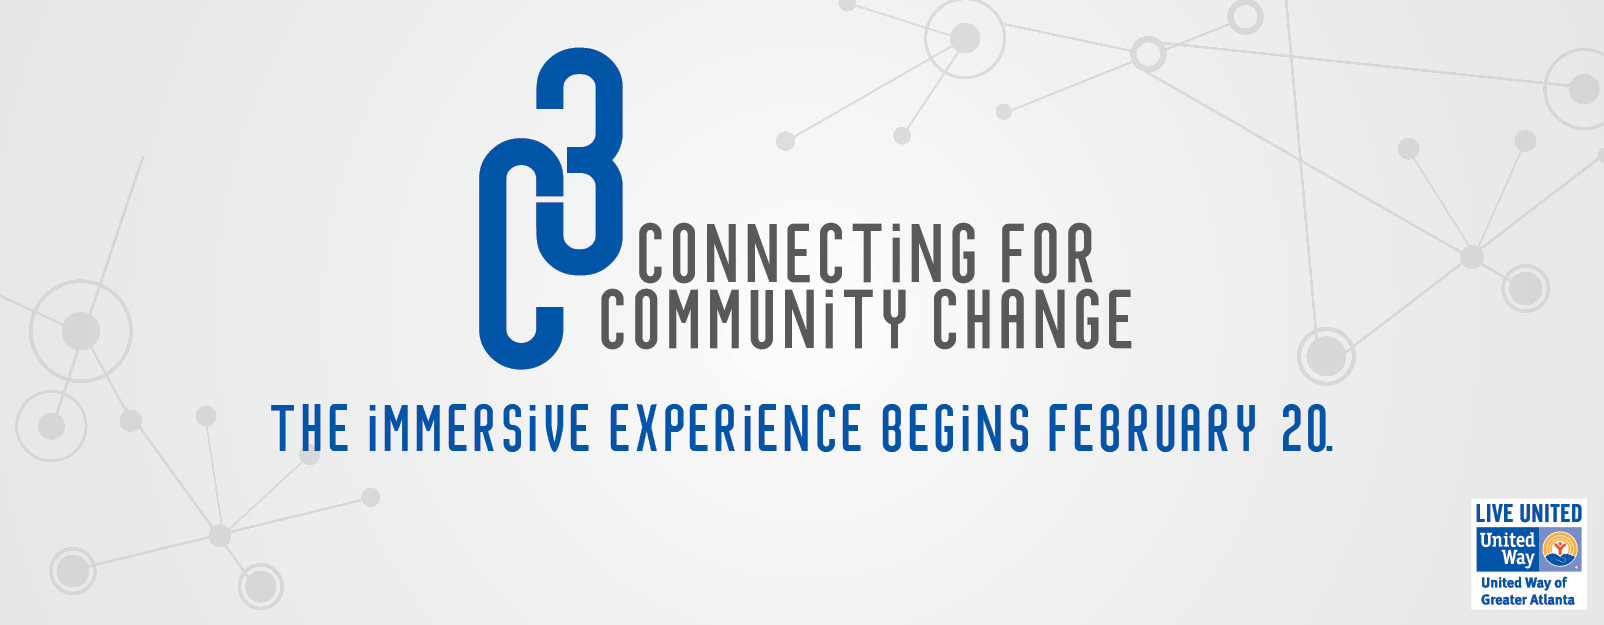 C3 - Connecting For Community Change